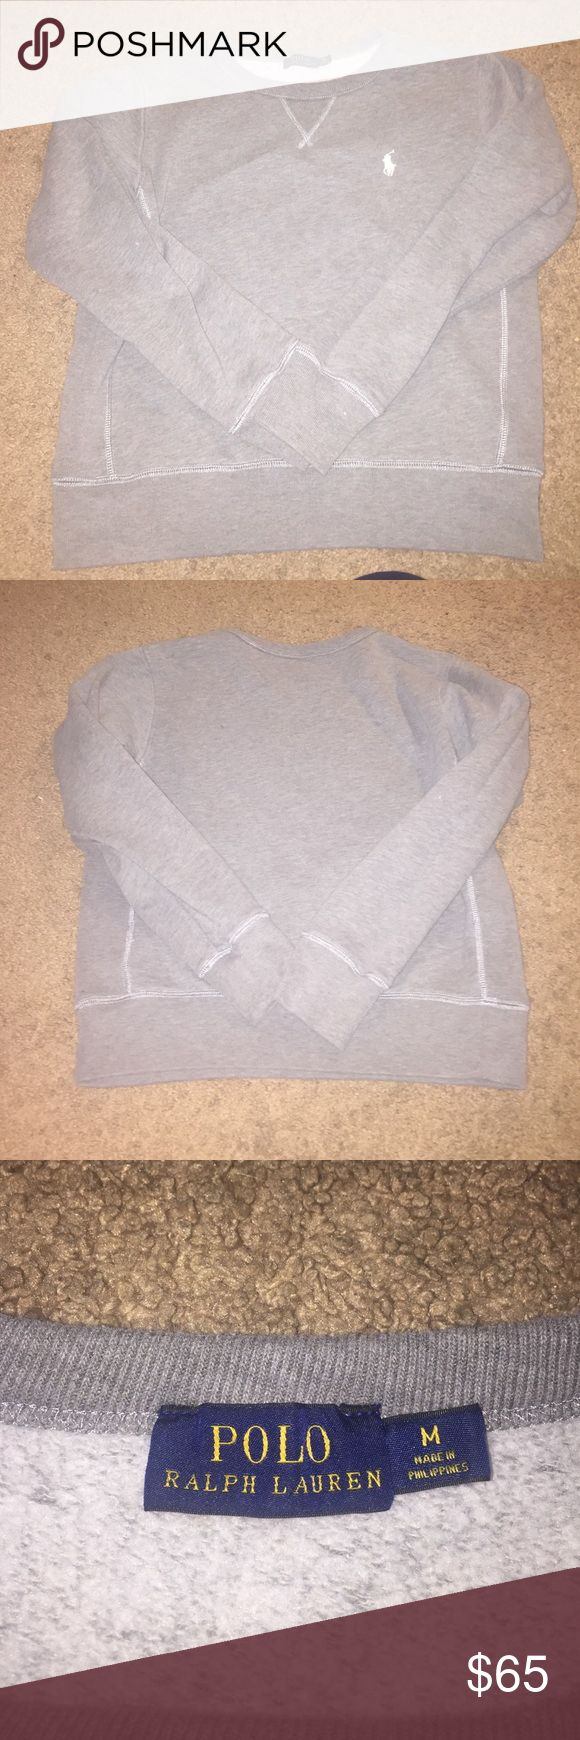 Polo pullover sweatshirt Brand new but I washed it and shrunk it ): will fit a small better which is why is listed as such. Polo by Ralph Lauren Tops Sweatshirts & Hoodies